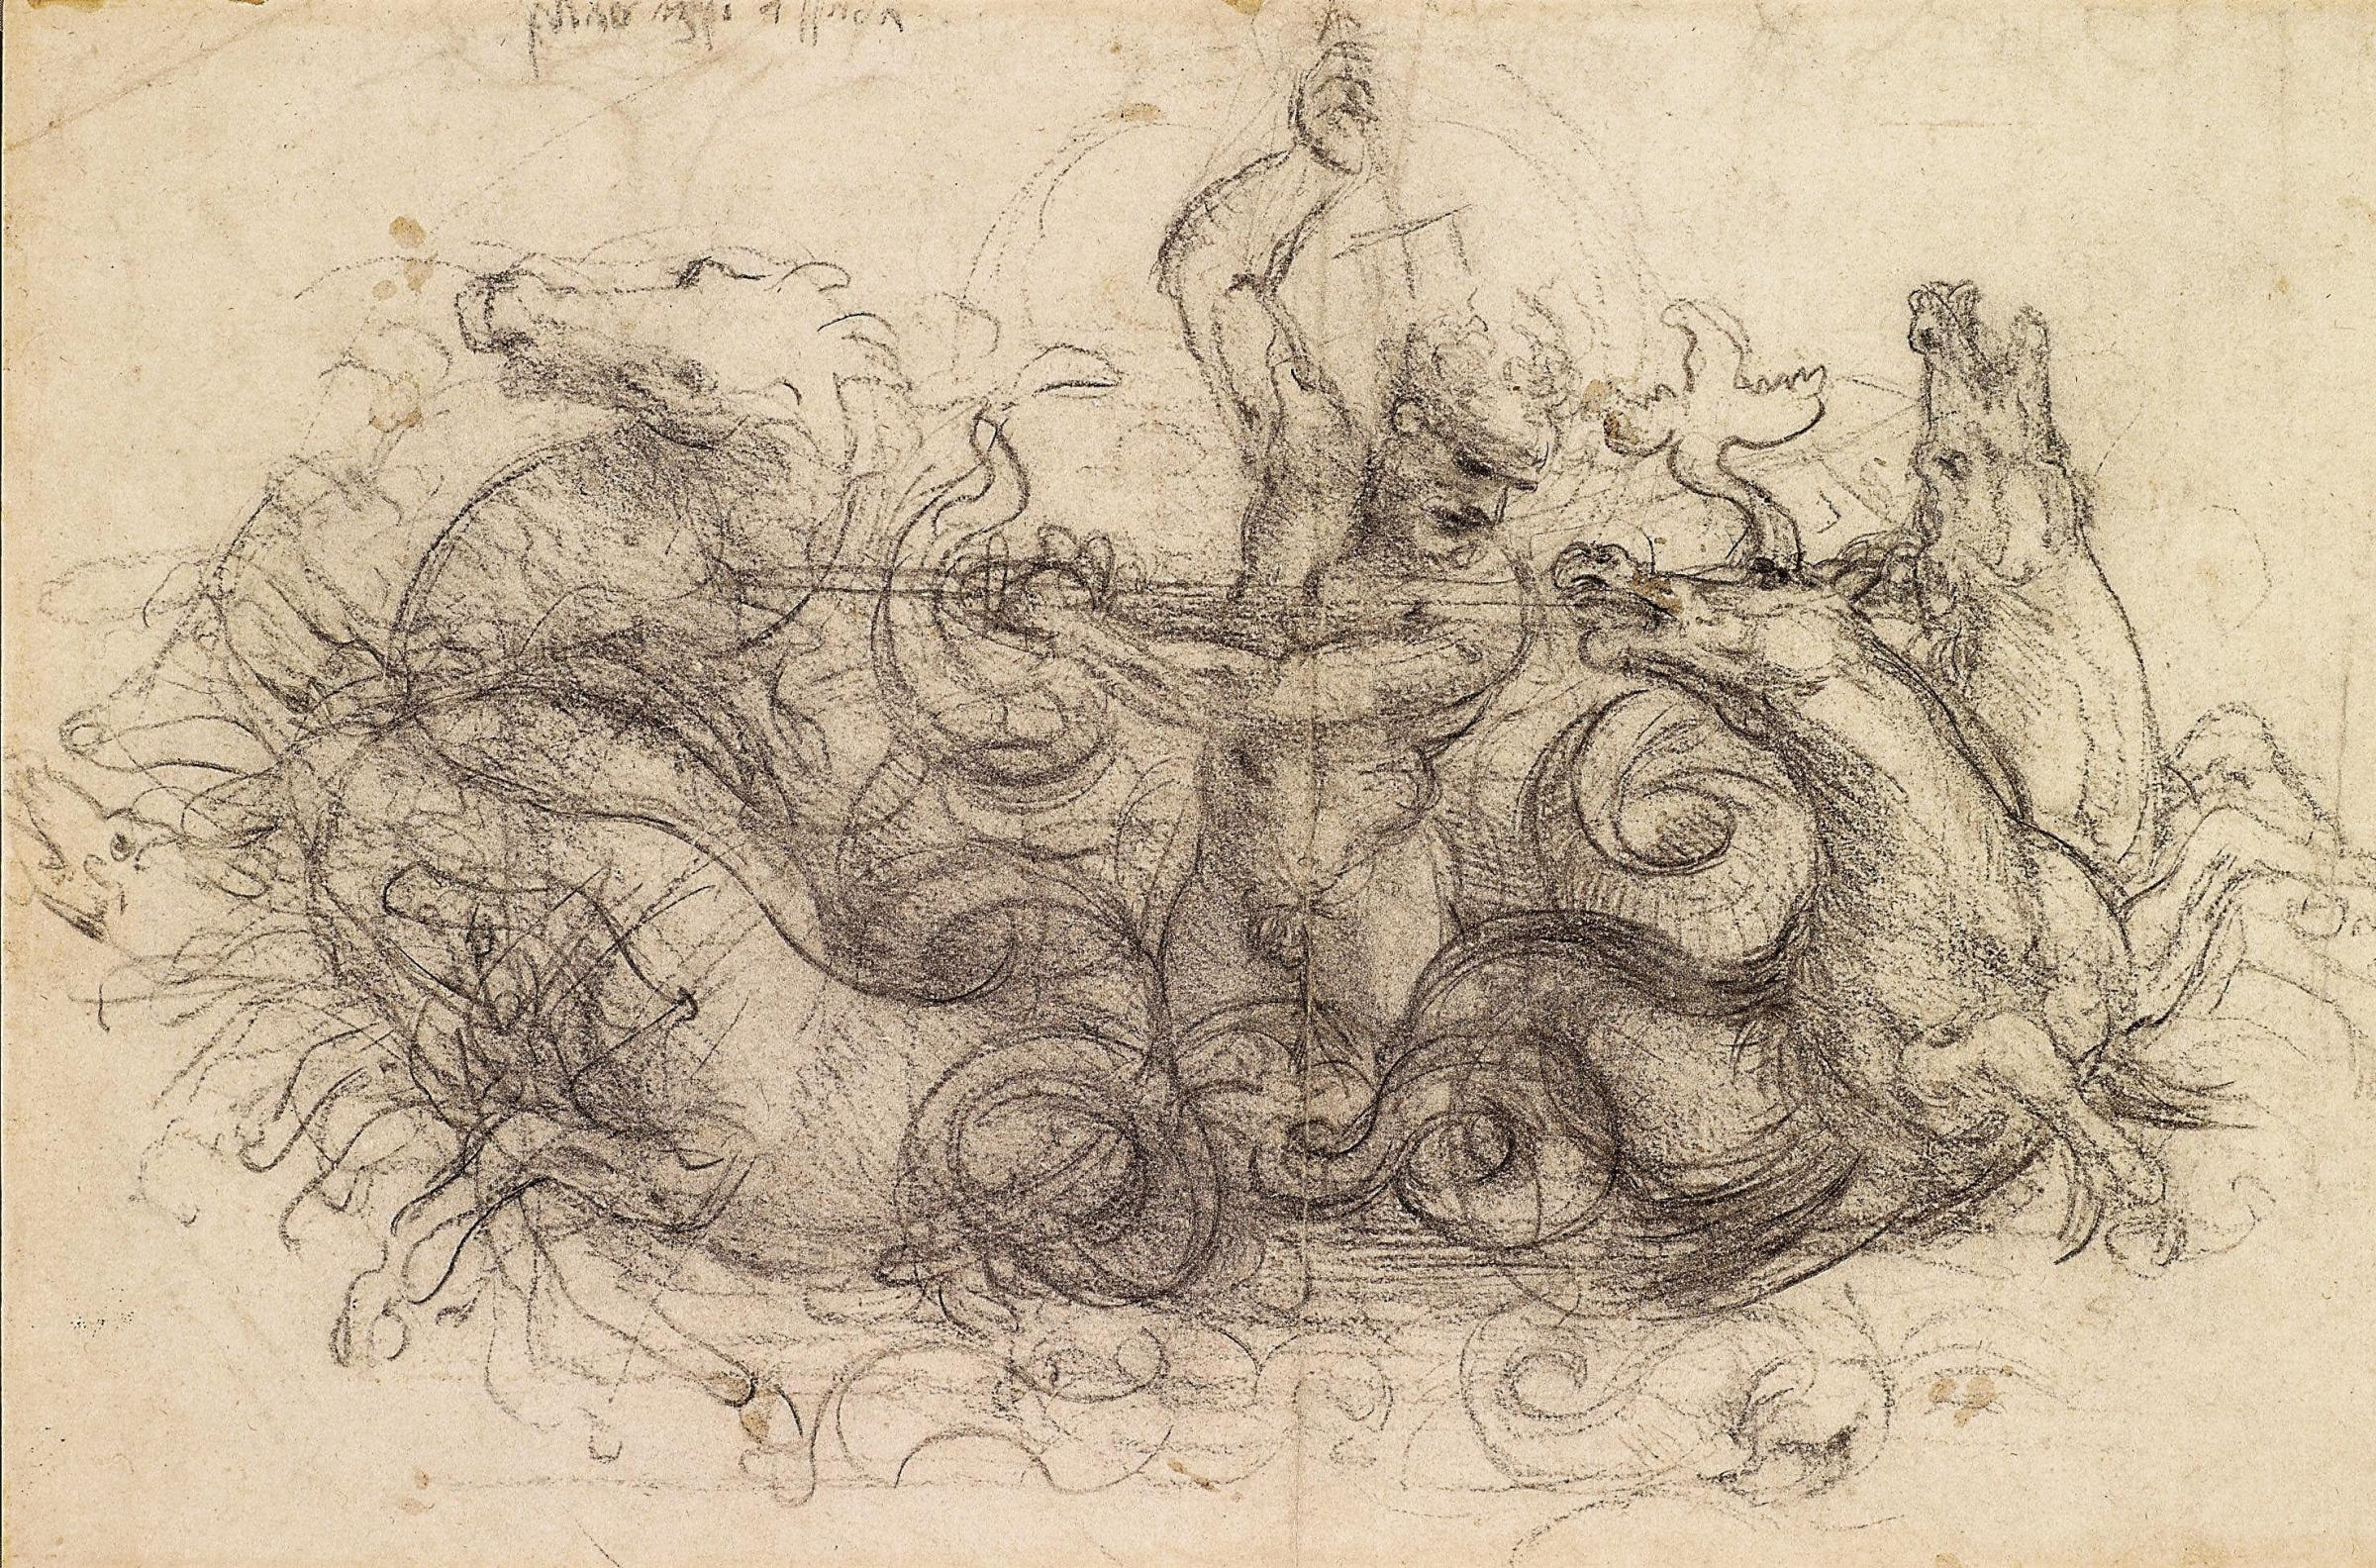 One of the almost 150 drawings by Leonardo da Vinci that will go on display. Photograph: PA